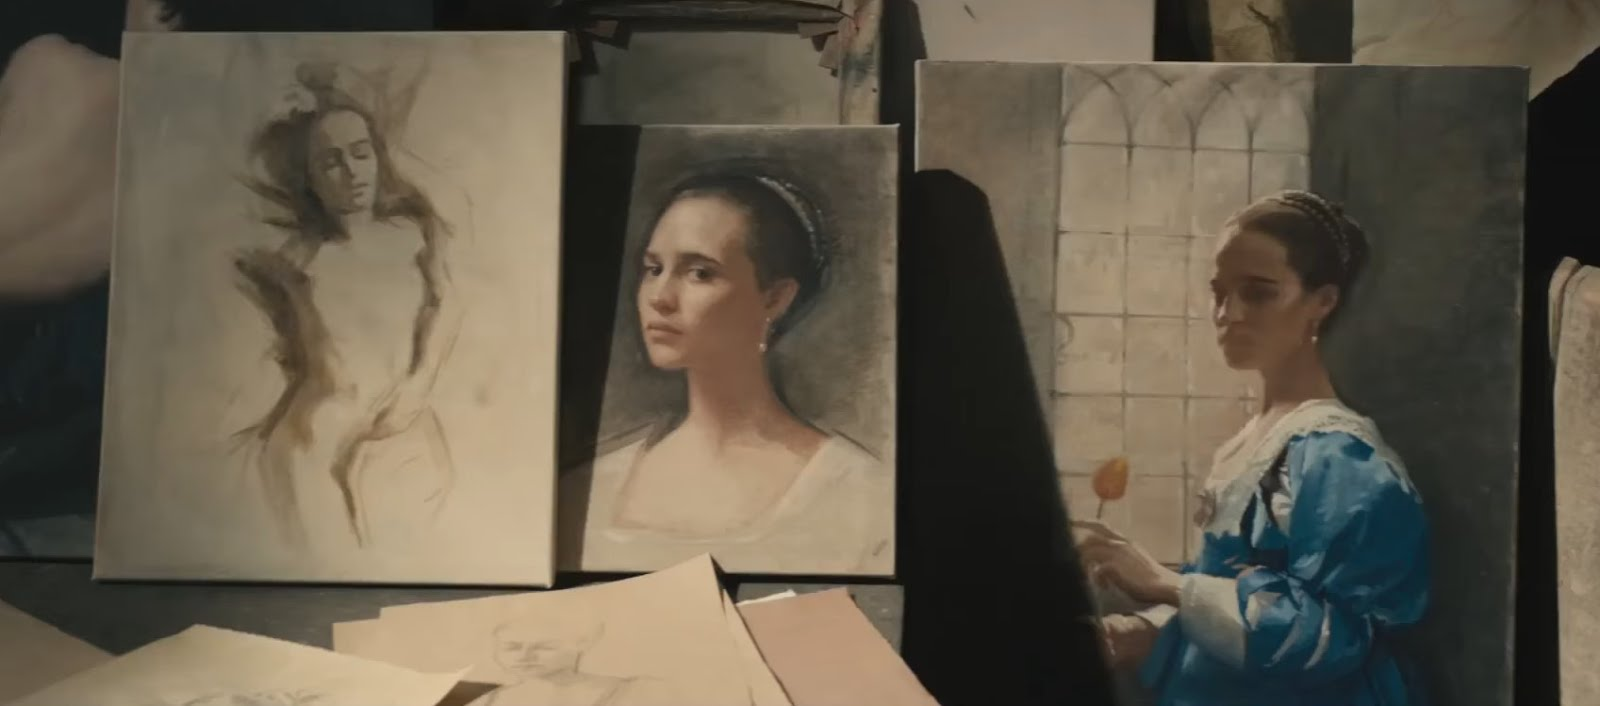 Fine Art Commissions: PORTRAITS IN FILM: Commissions for Tulip Fever